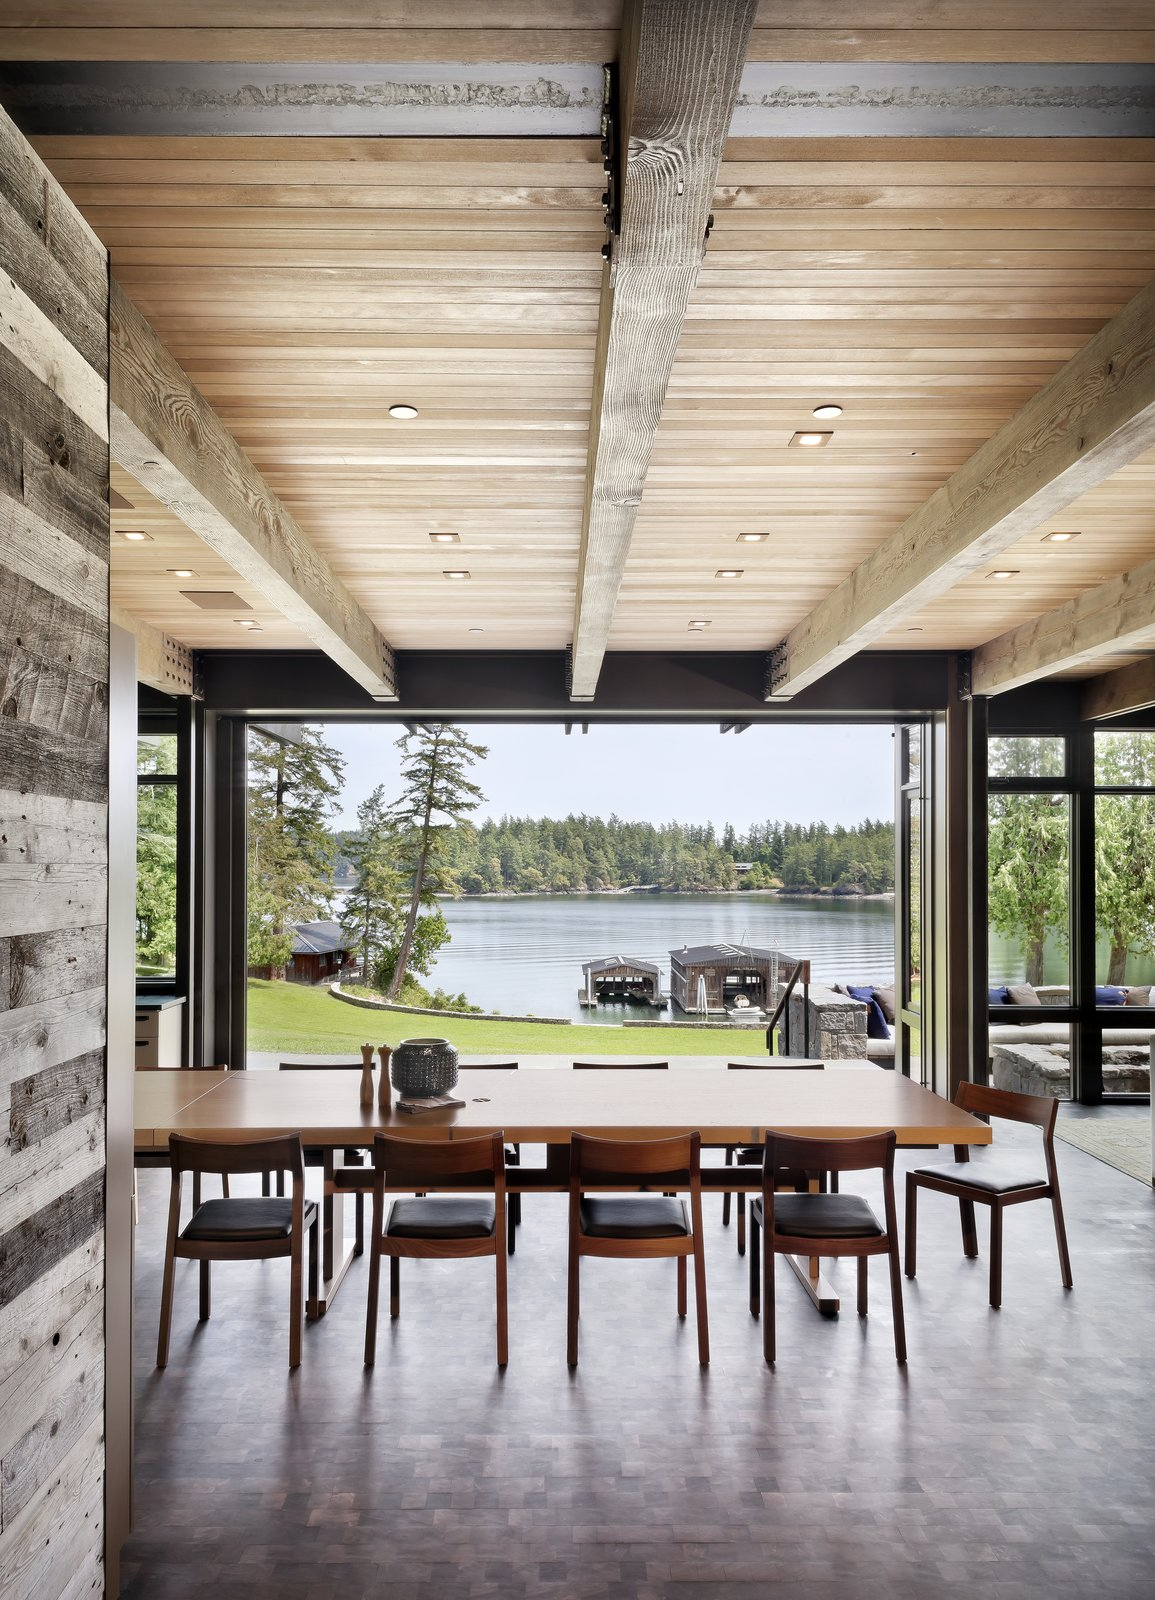 DeForest Architects designed and renovated Orcas Island Retreat to be the perfect sustainable getaway for a young couple.